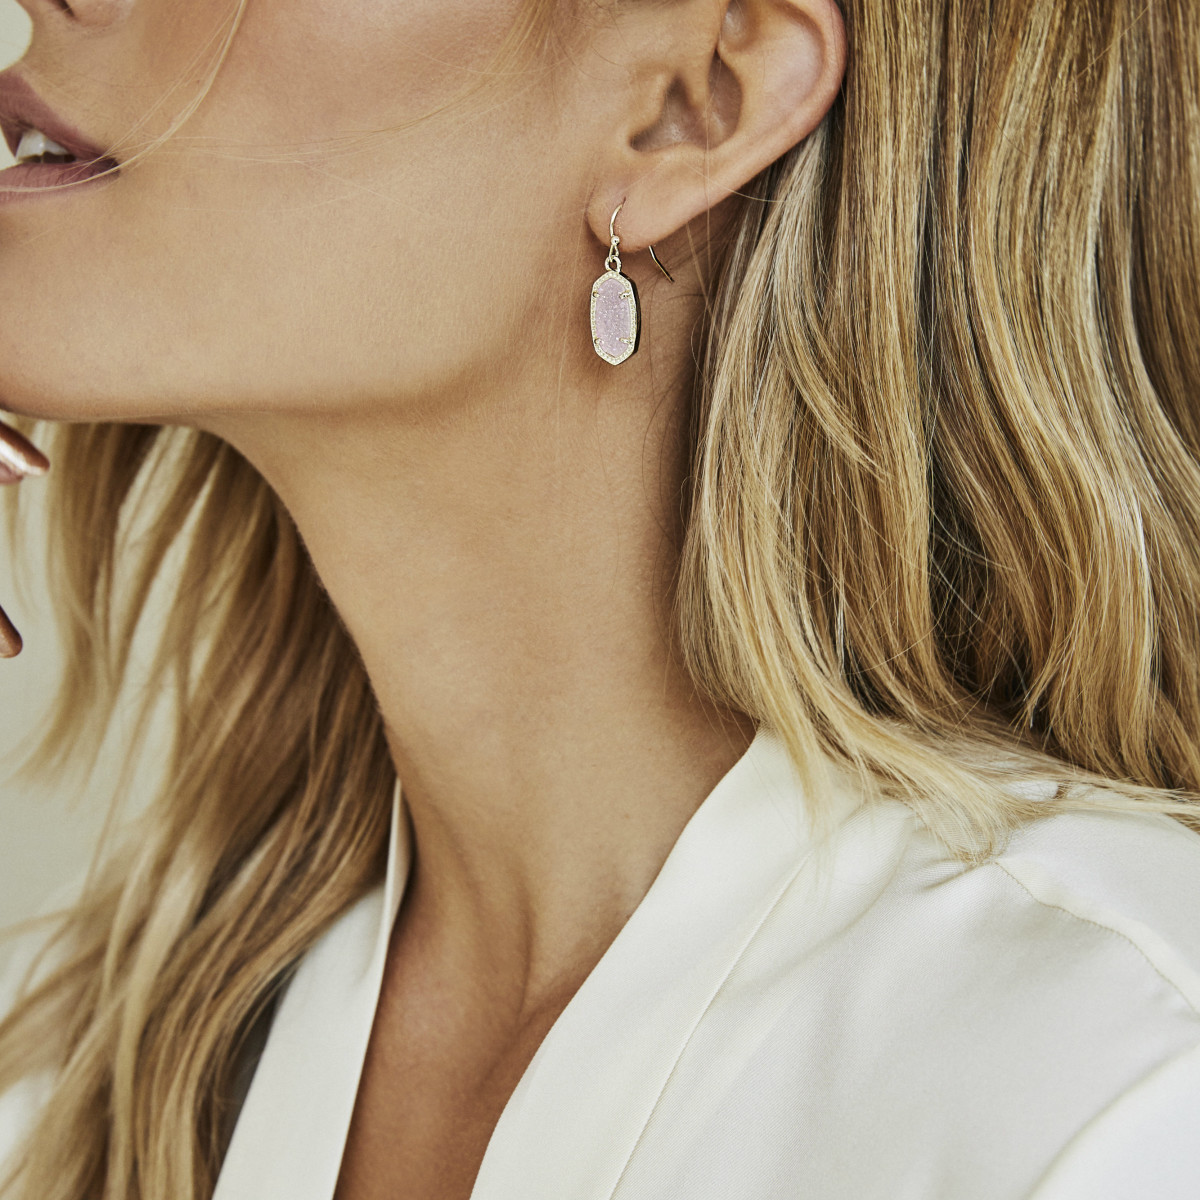 Kendra Scott jewelry